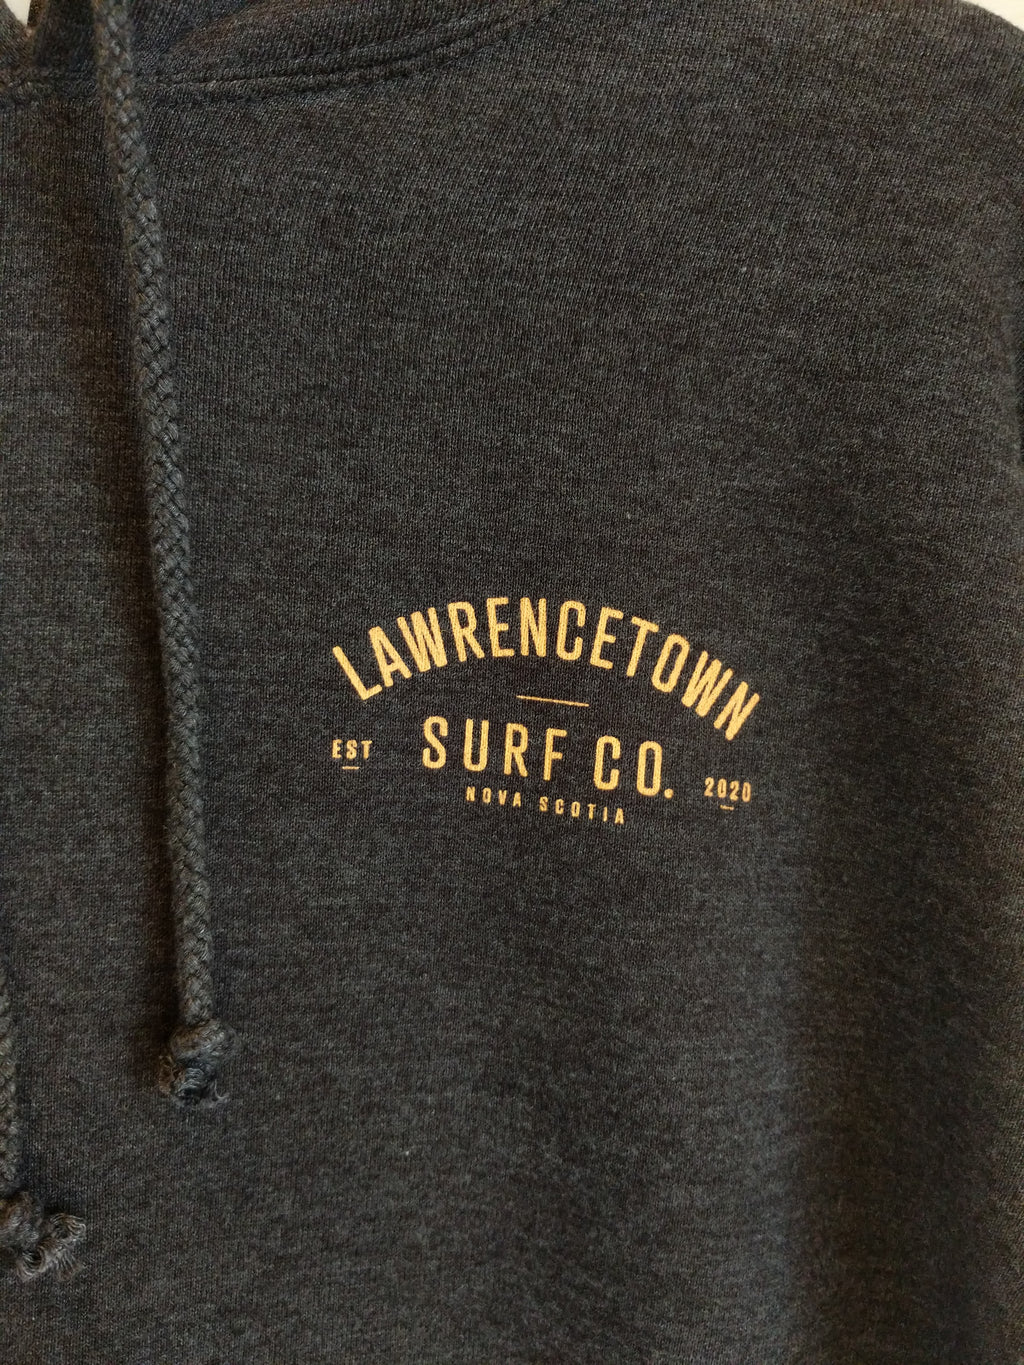 Lawrencetown Surf Co. Heavy Weight Hoodie - Charcoal Grey / Peach